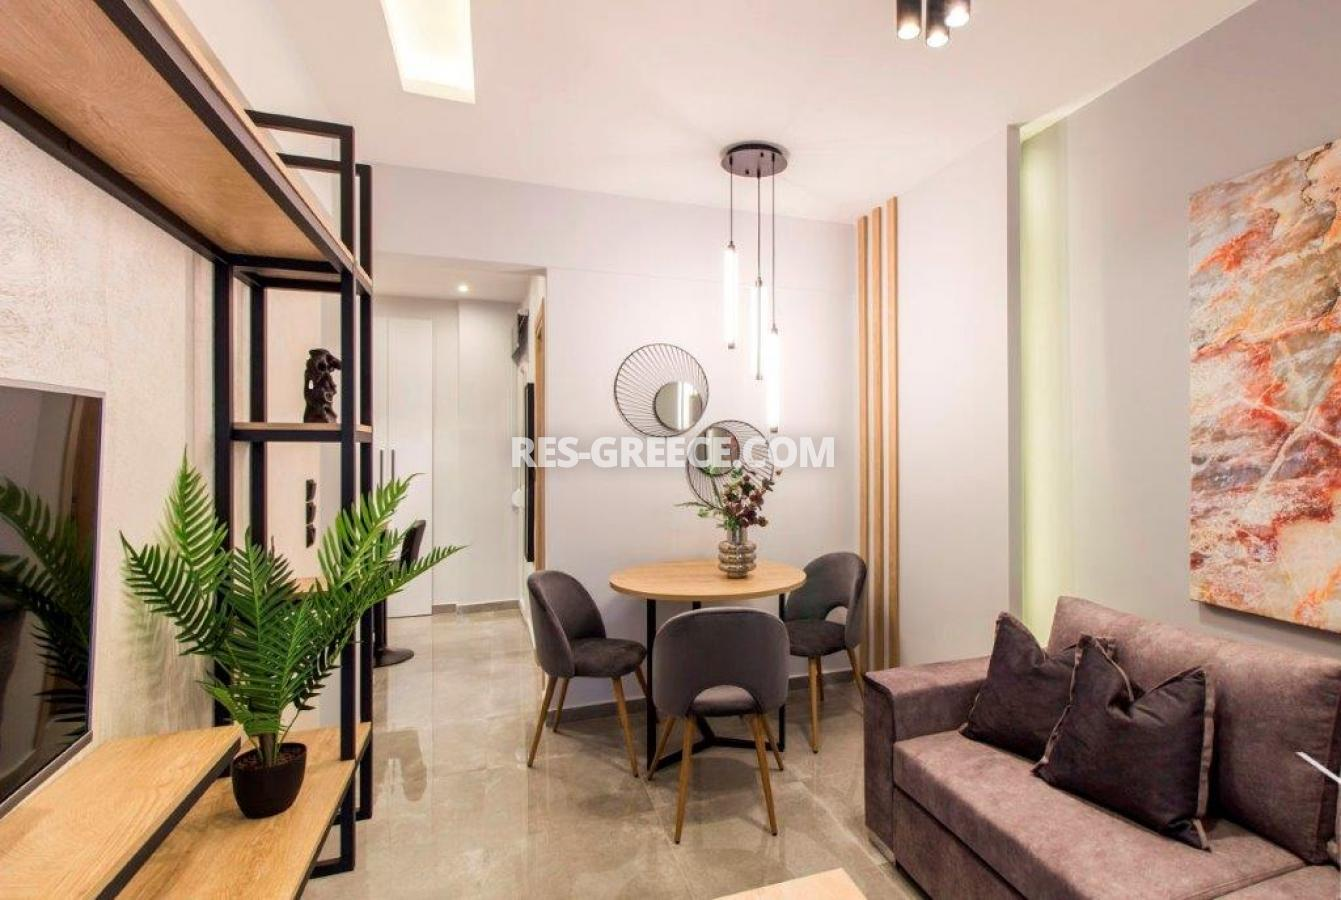 N.Foka A, Central Macedonia, Greece - apartments in Thessaloniki center for long-term or short-term rent - Photo 5